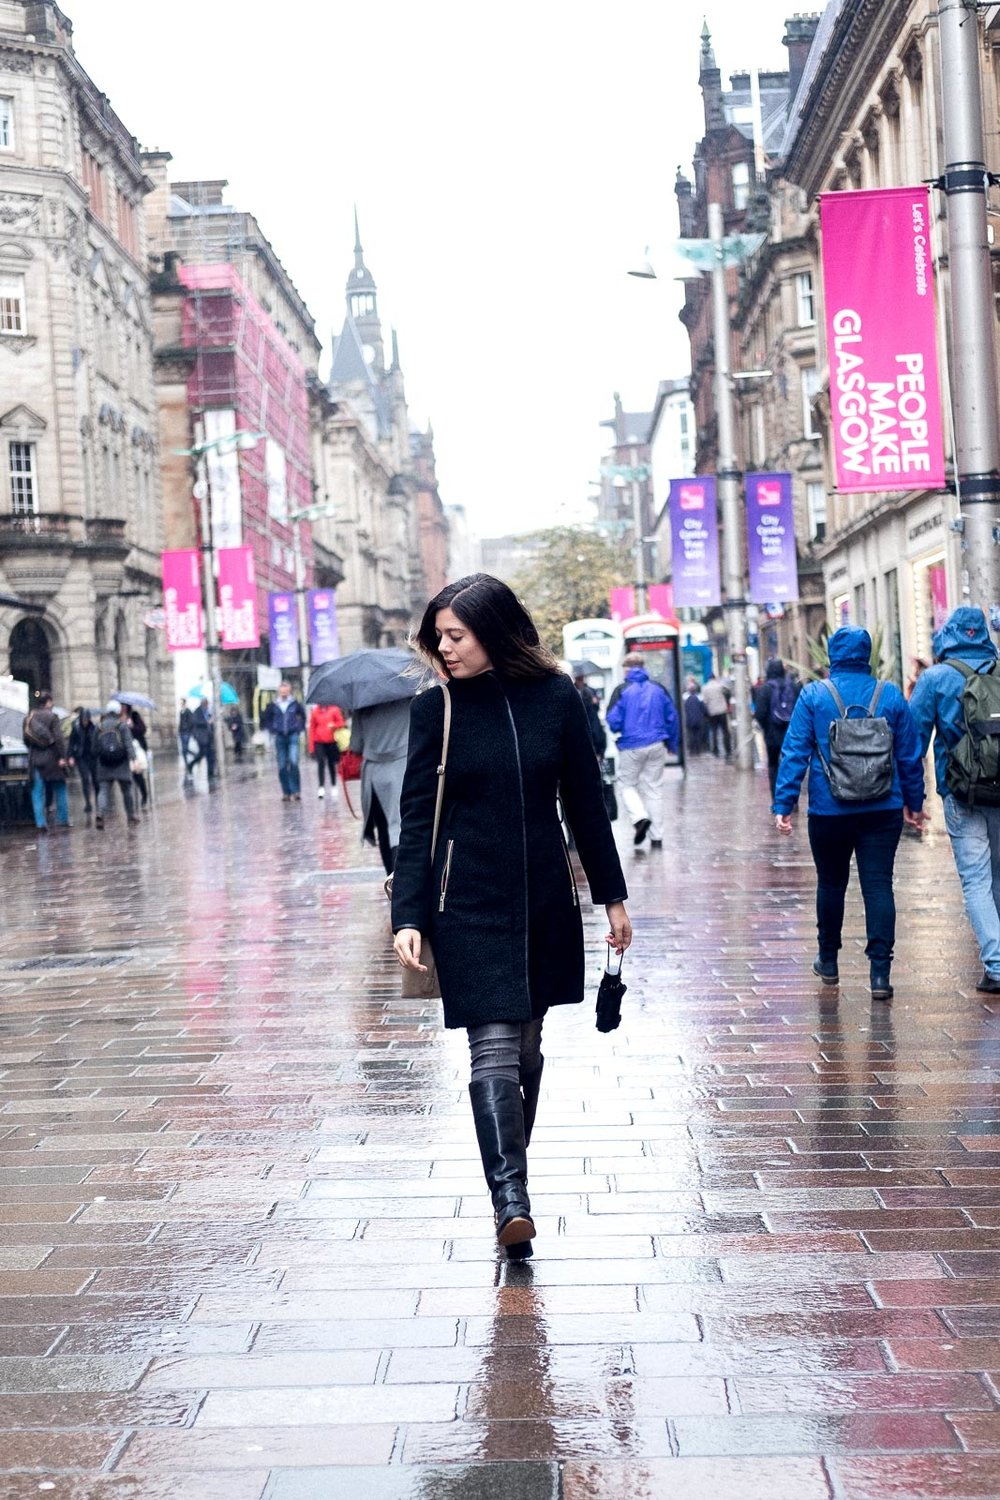 City Guide: Off Duty in Glasgow - Buchanan Street Walking